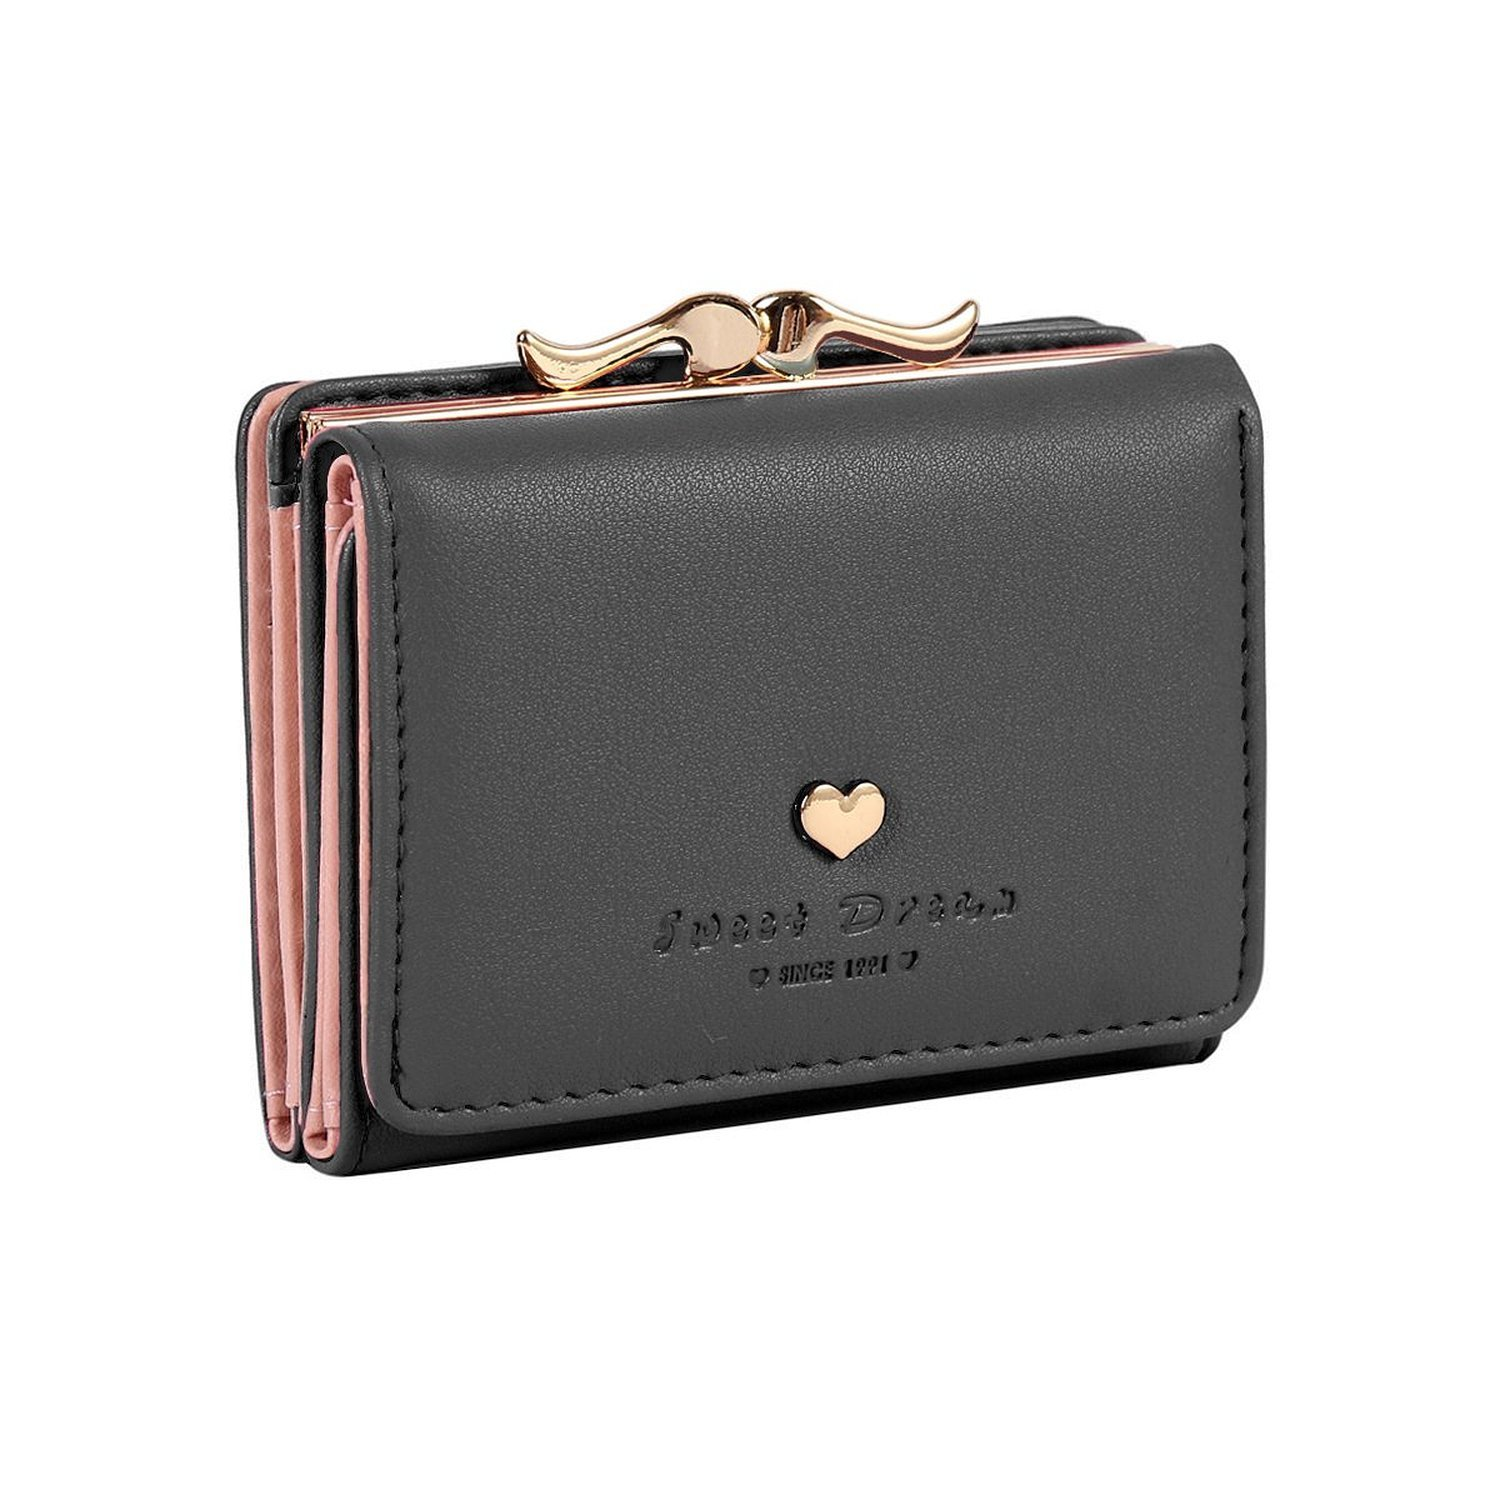 Jastore Girls Womens Small Clutch Leather Purse Cards Holder Wallet (Black)